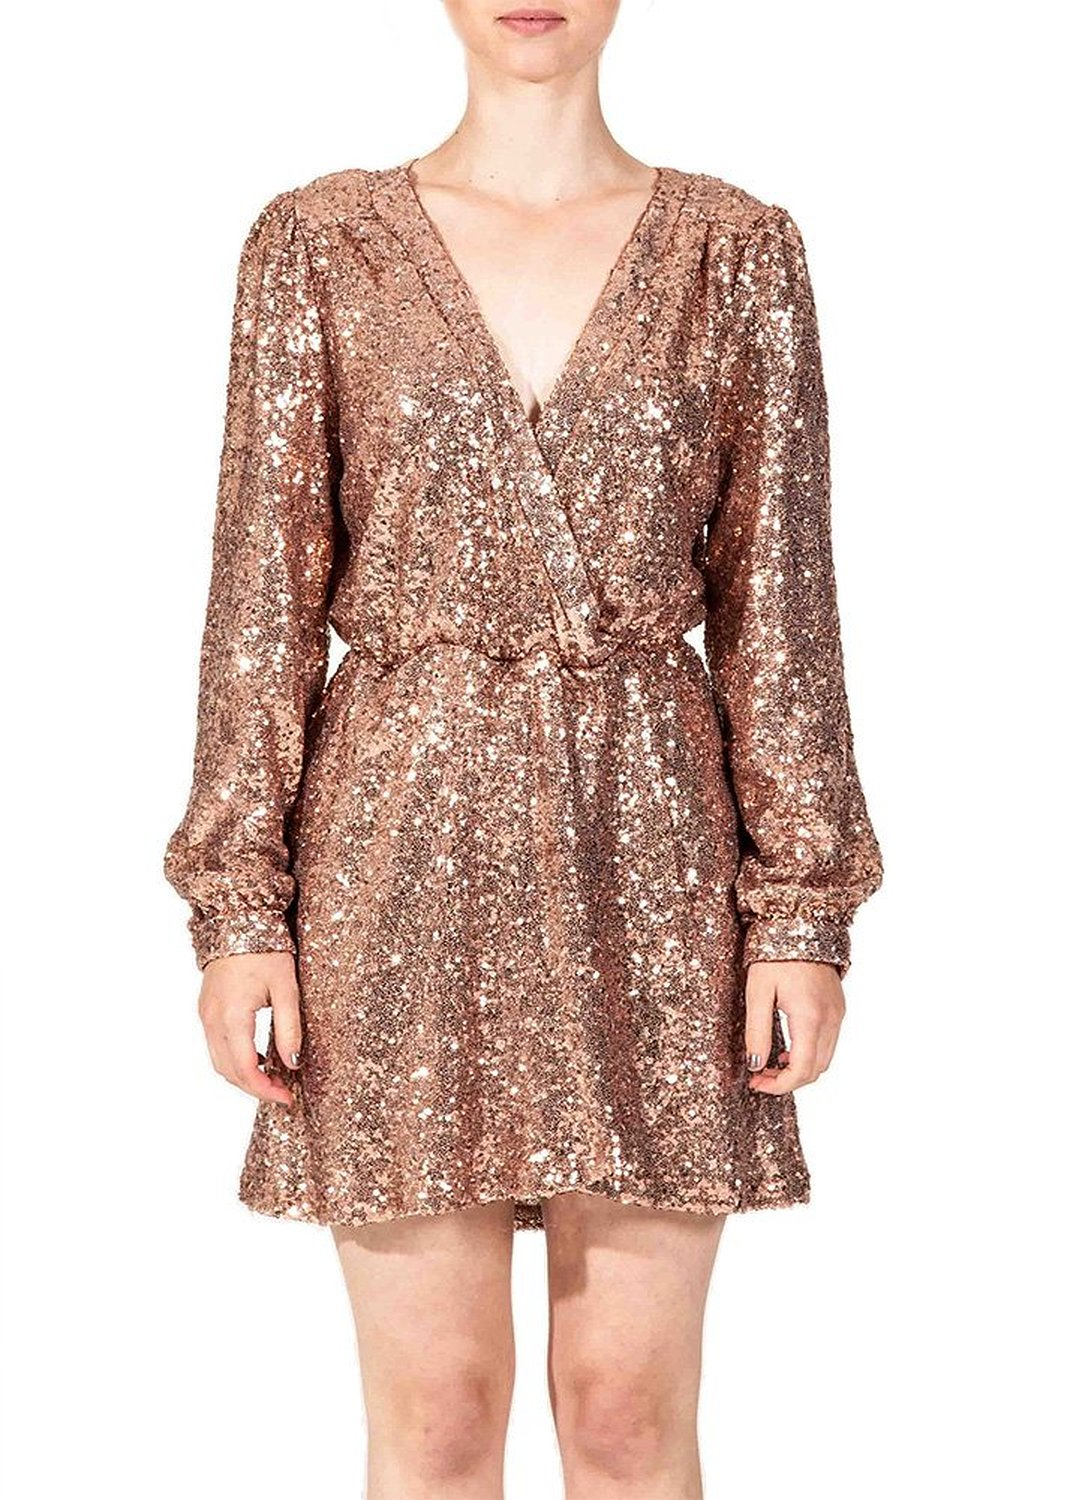 Honey punch women's sequins wrap dress at amazon women's clothing store: